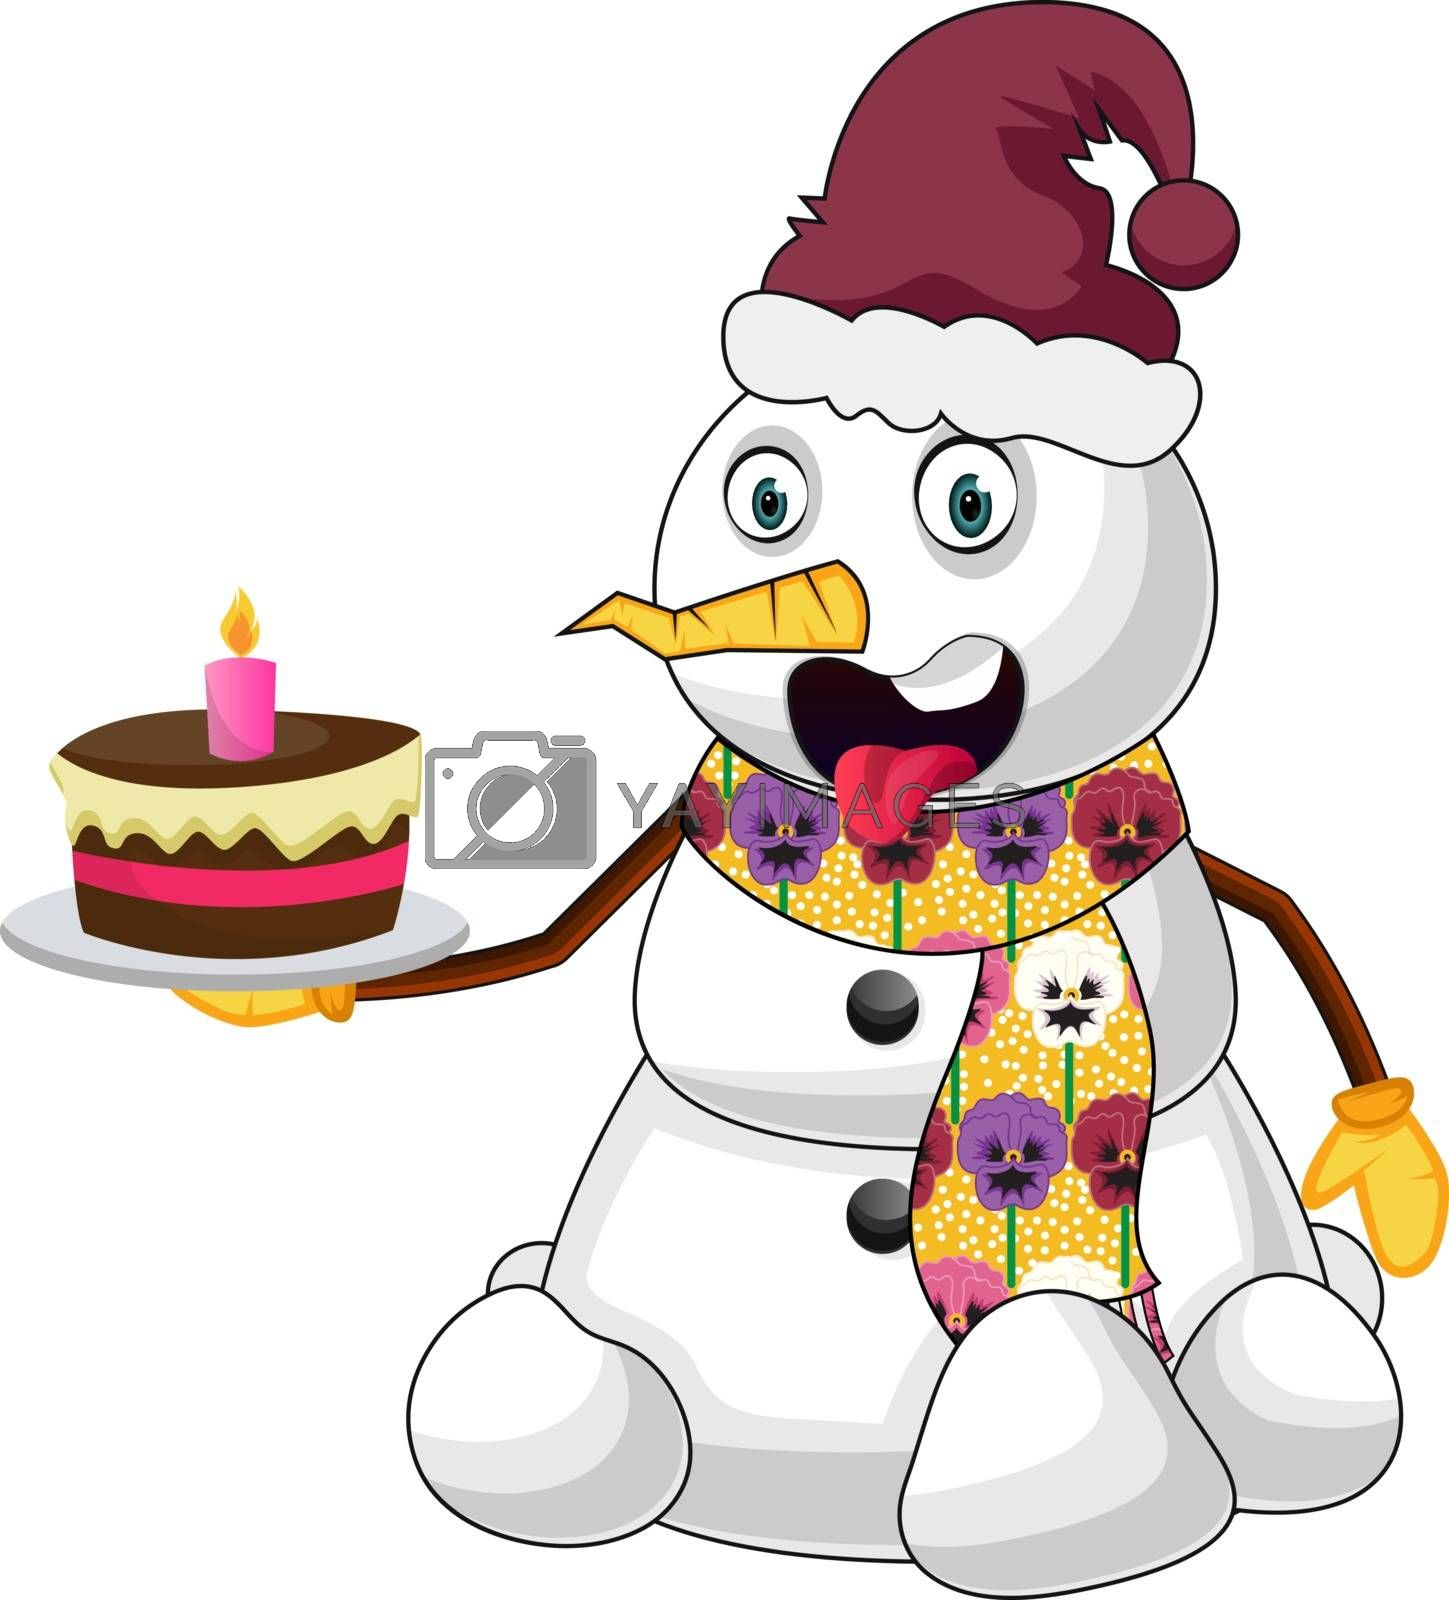 Royalty free image of Snowman with cake illustration vector on white background by Morphart